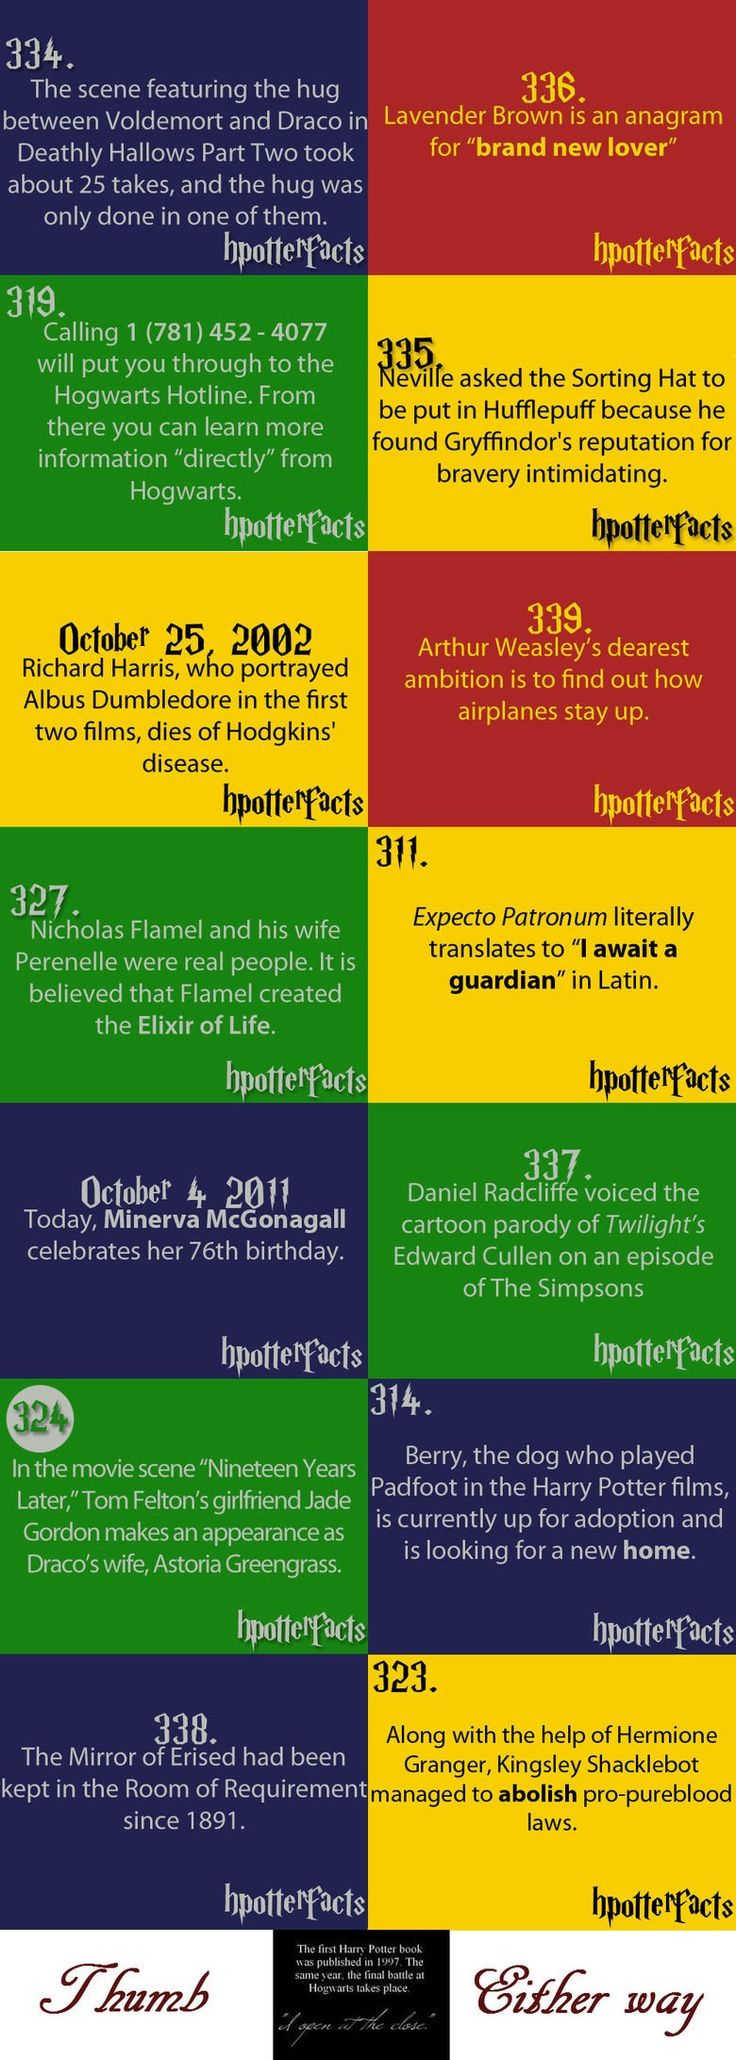 337 best images about harry and ginny on pinterest harry birthday - Harry Potter Facts The Dog Got Adopted